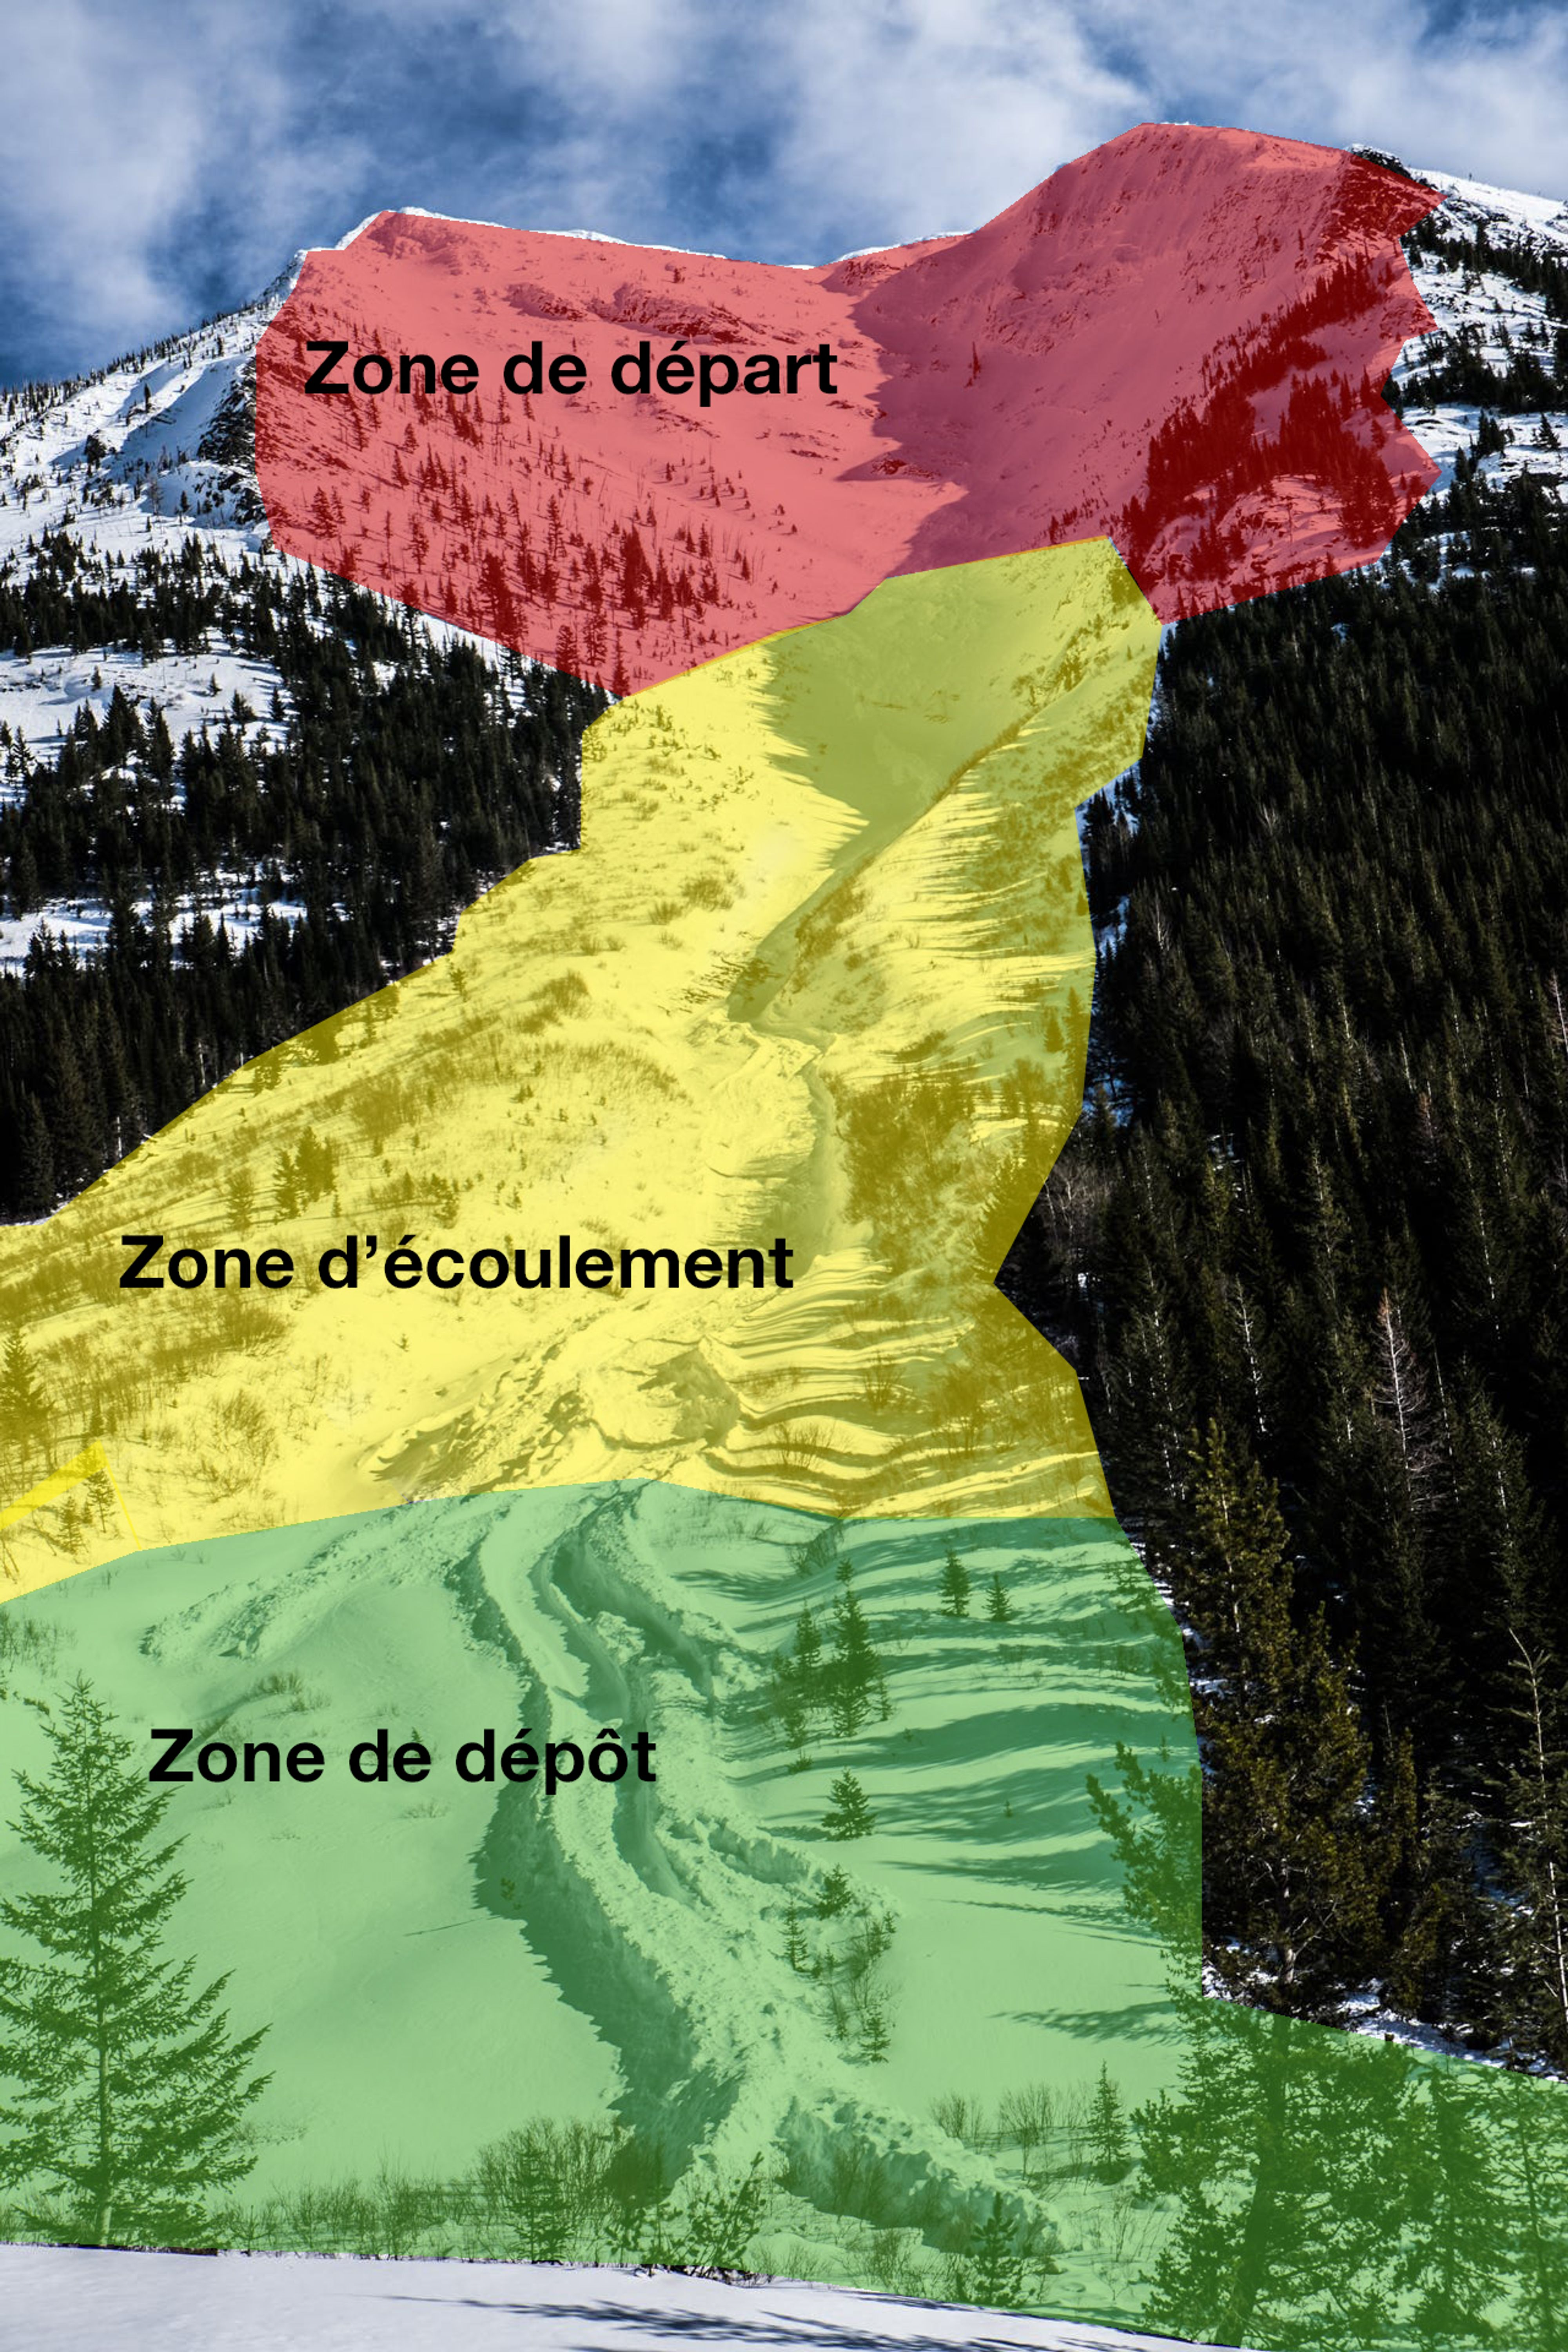 Avalanche paths, also called slide paths, are composed of three parts. The top is called the start zone, where the avalanches begin. At the bottom is the runout zone, where avalanches lose steam and come to a stop. In between, where the slide runs, is the track. This is where the avalanche hits its greatest speed.